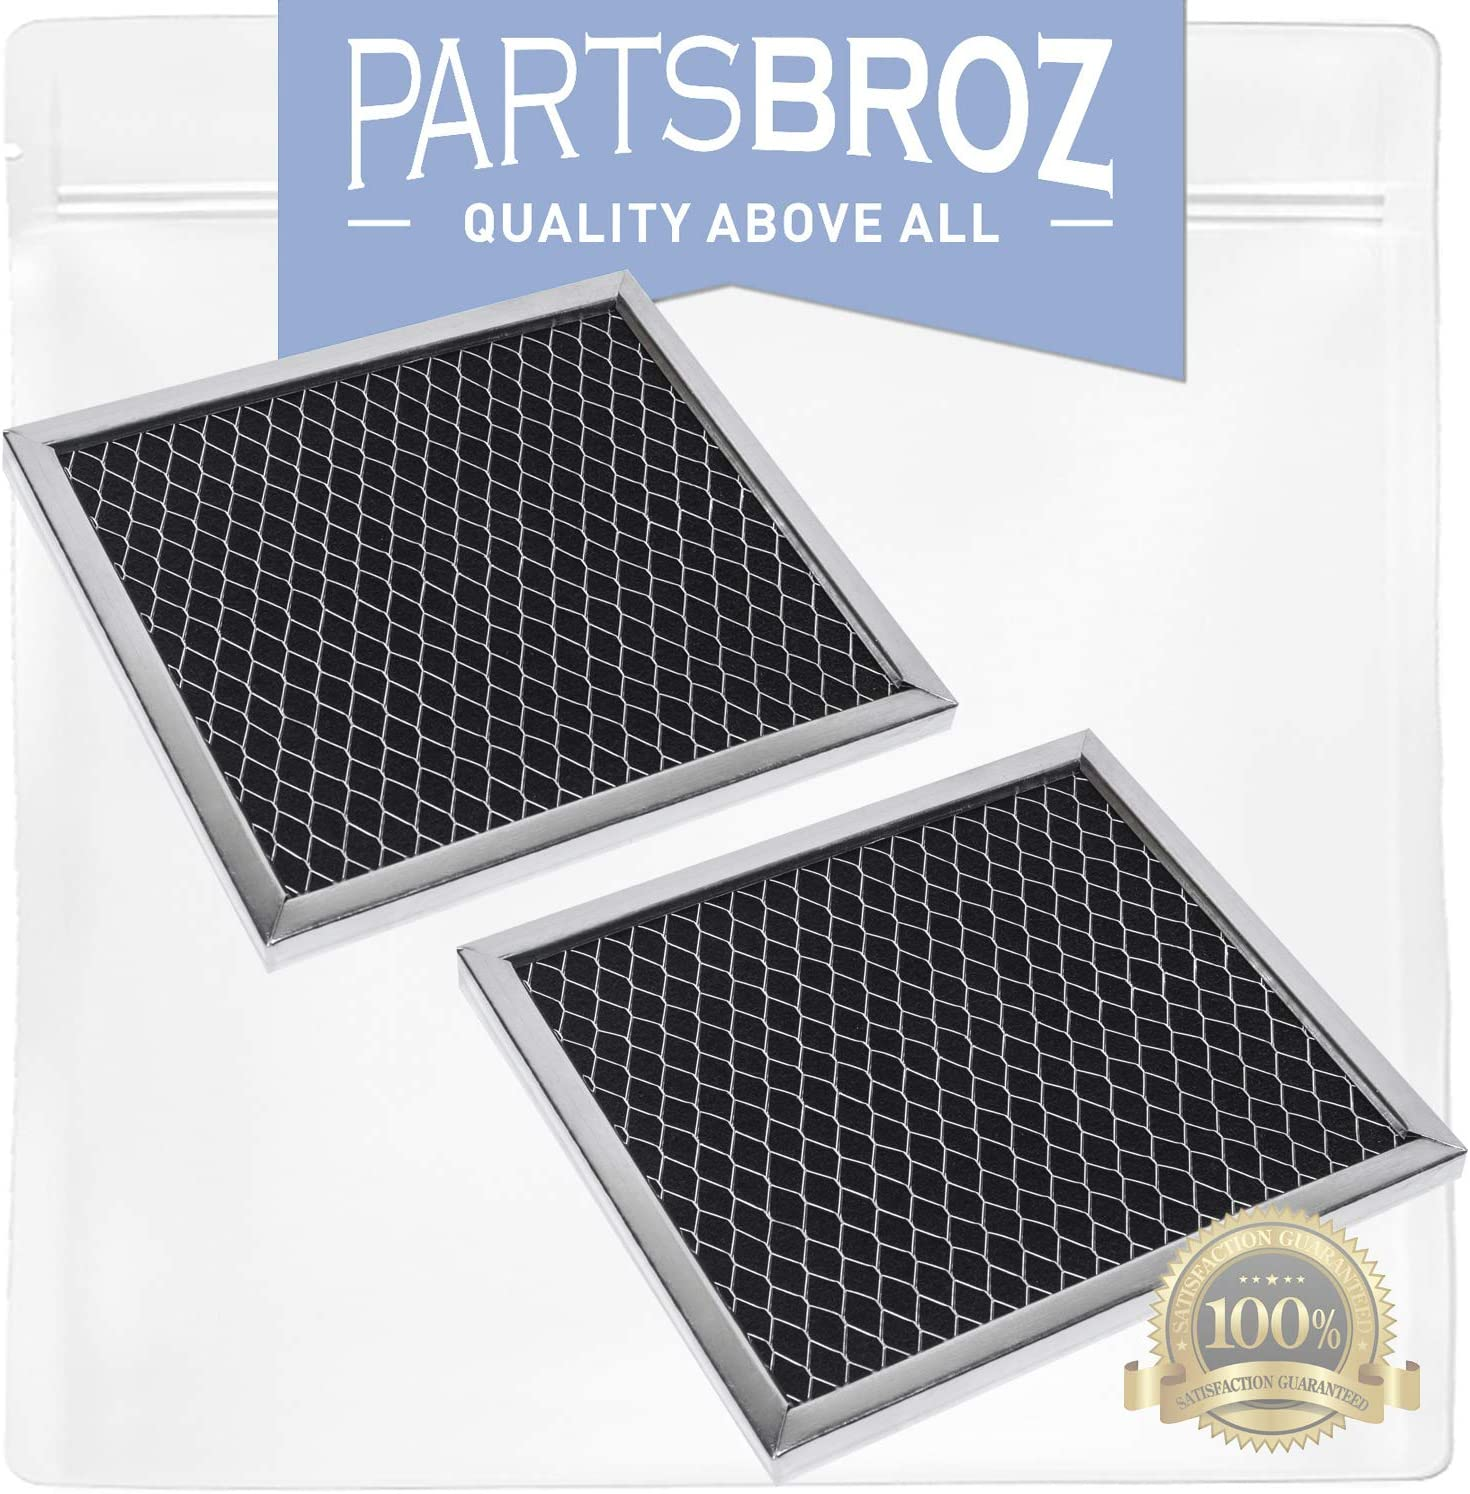 8206230A (2-Pack) Charcoal Filters by PartsBroz - Compatible with Whirlpool Microwaves - Replaces AP4299744, 1266639, 8206230, 8206230ARP, AH1871363, EA1871363, PS1871363